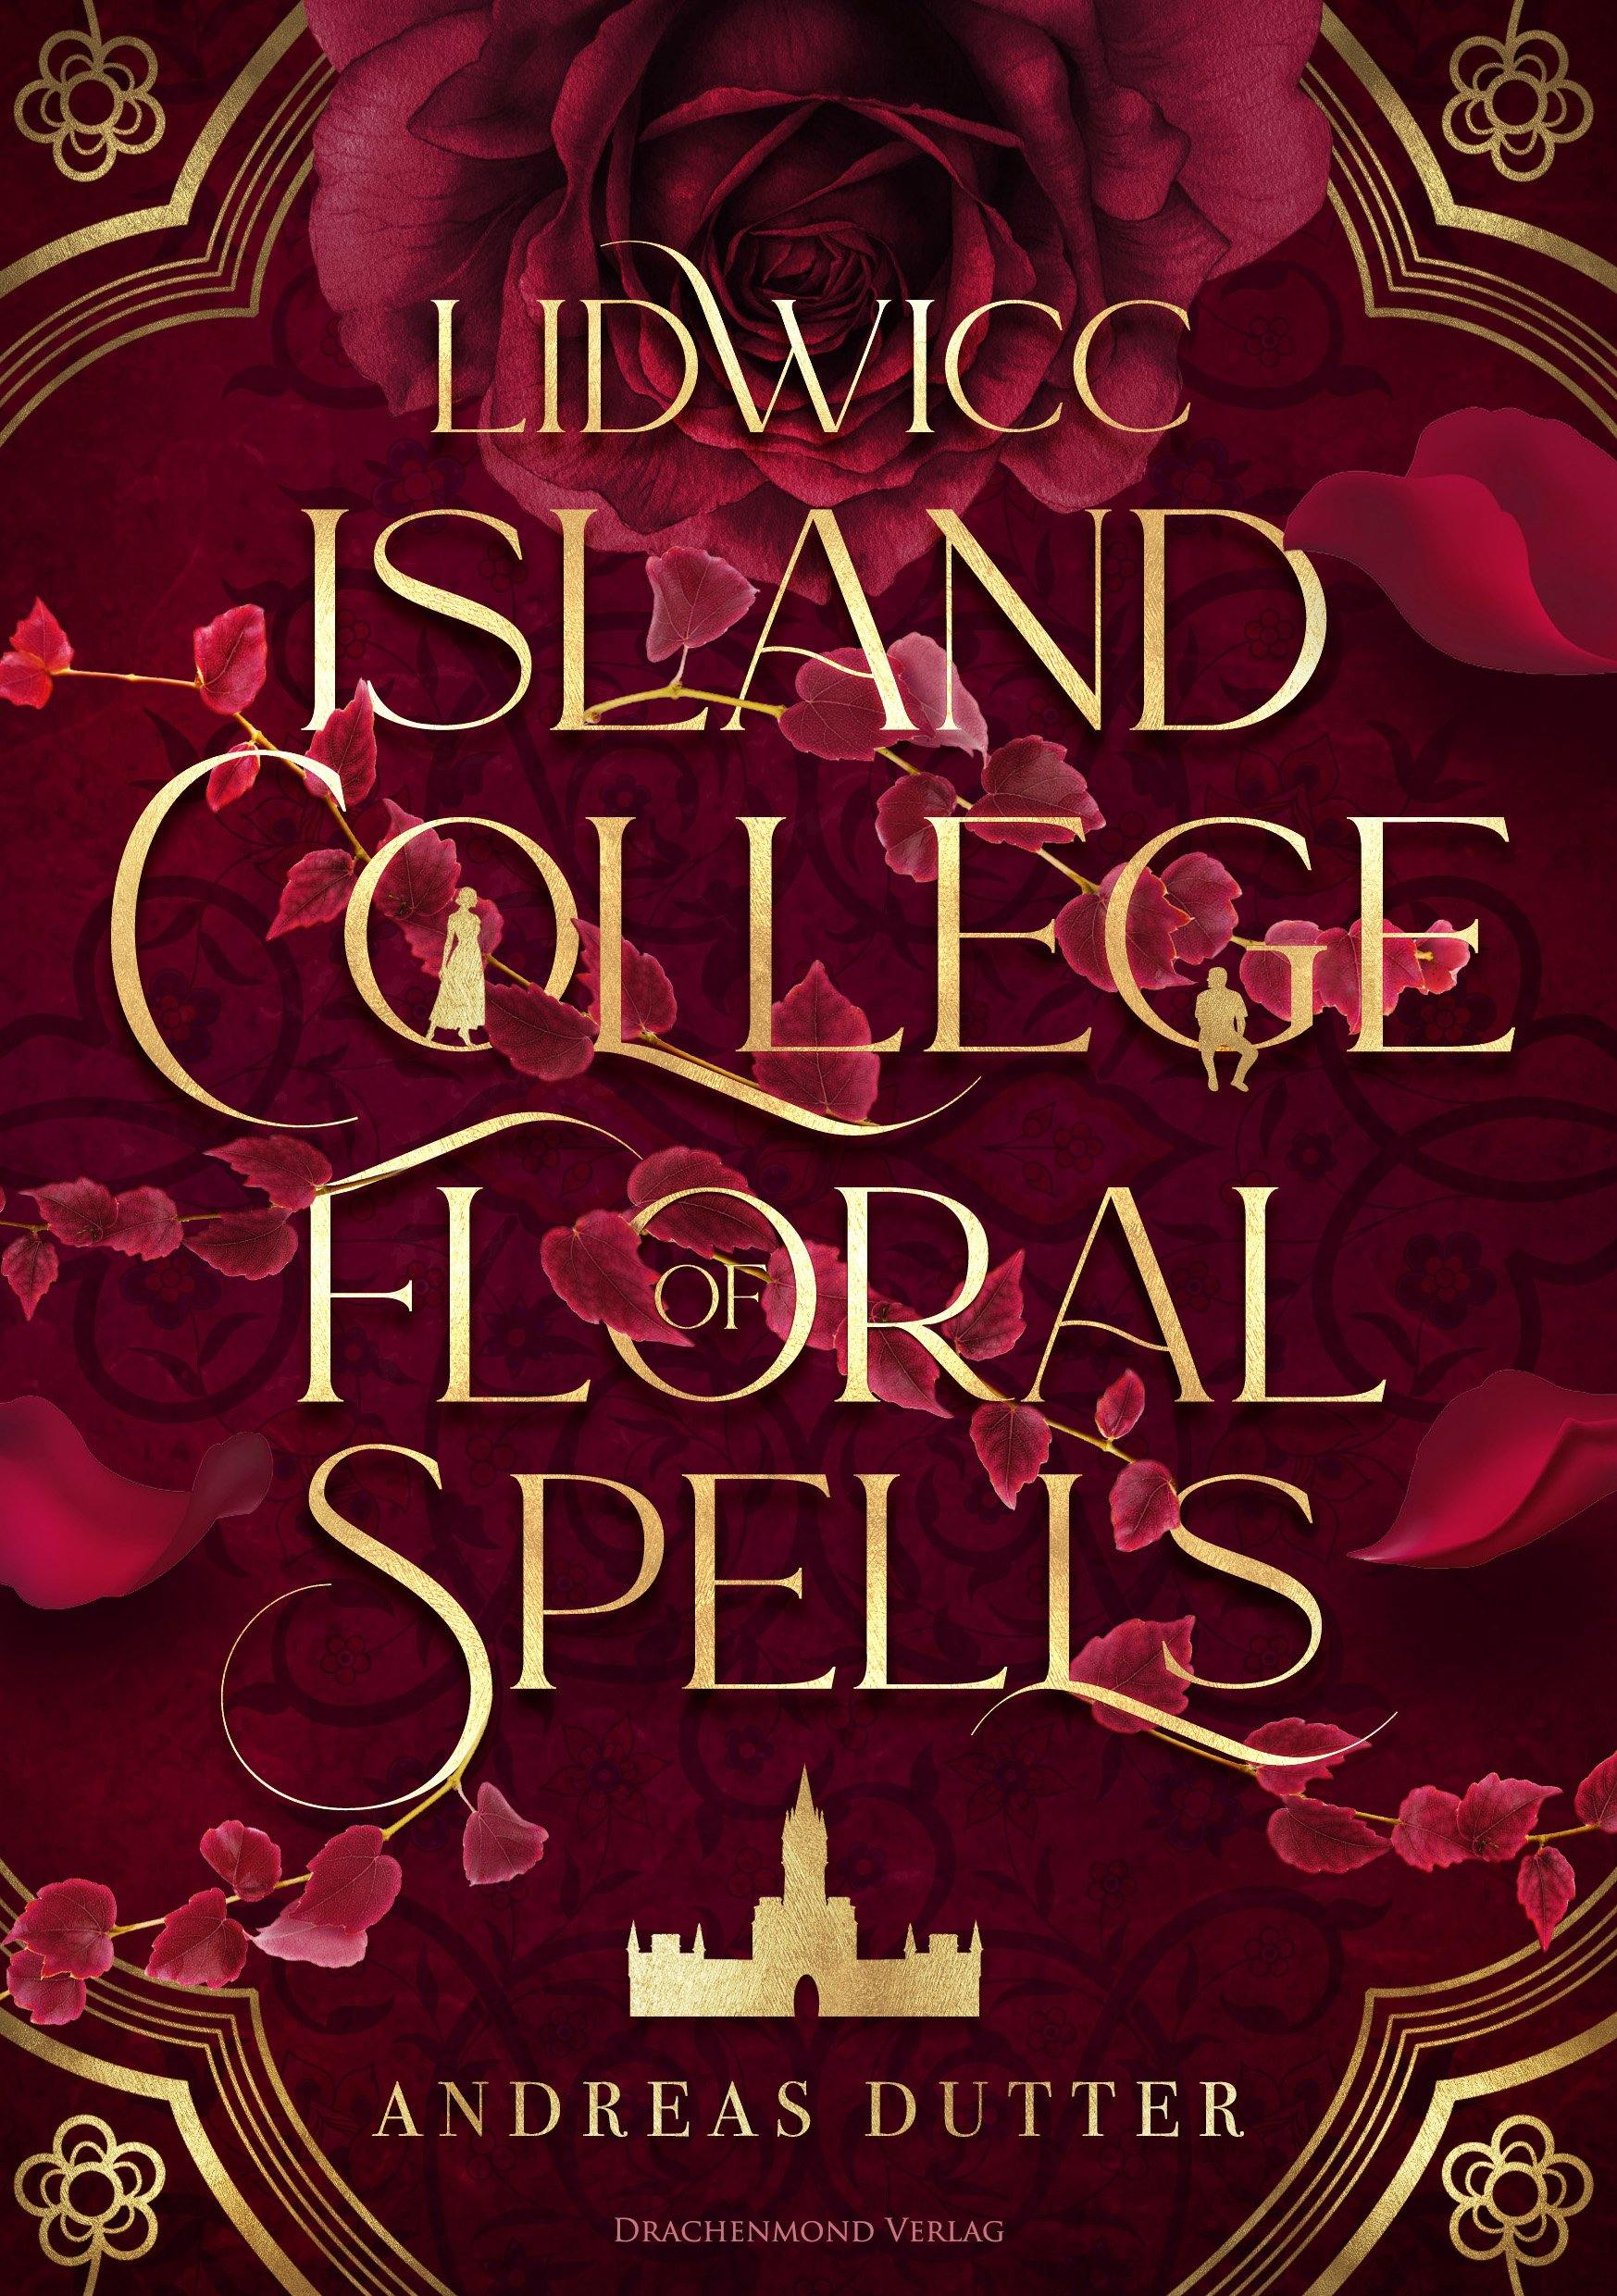 Lidwicc Island College of Floral Spells - Drachenmond Verlag